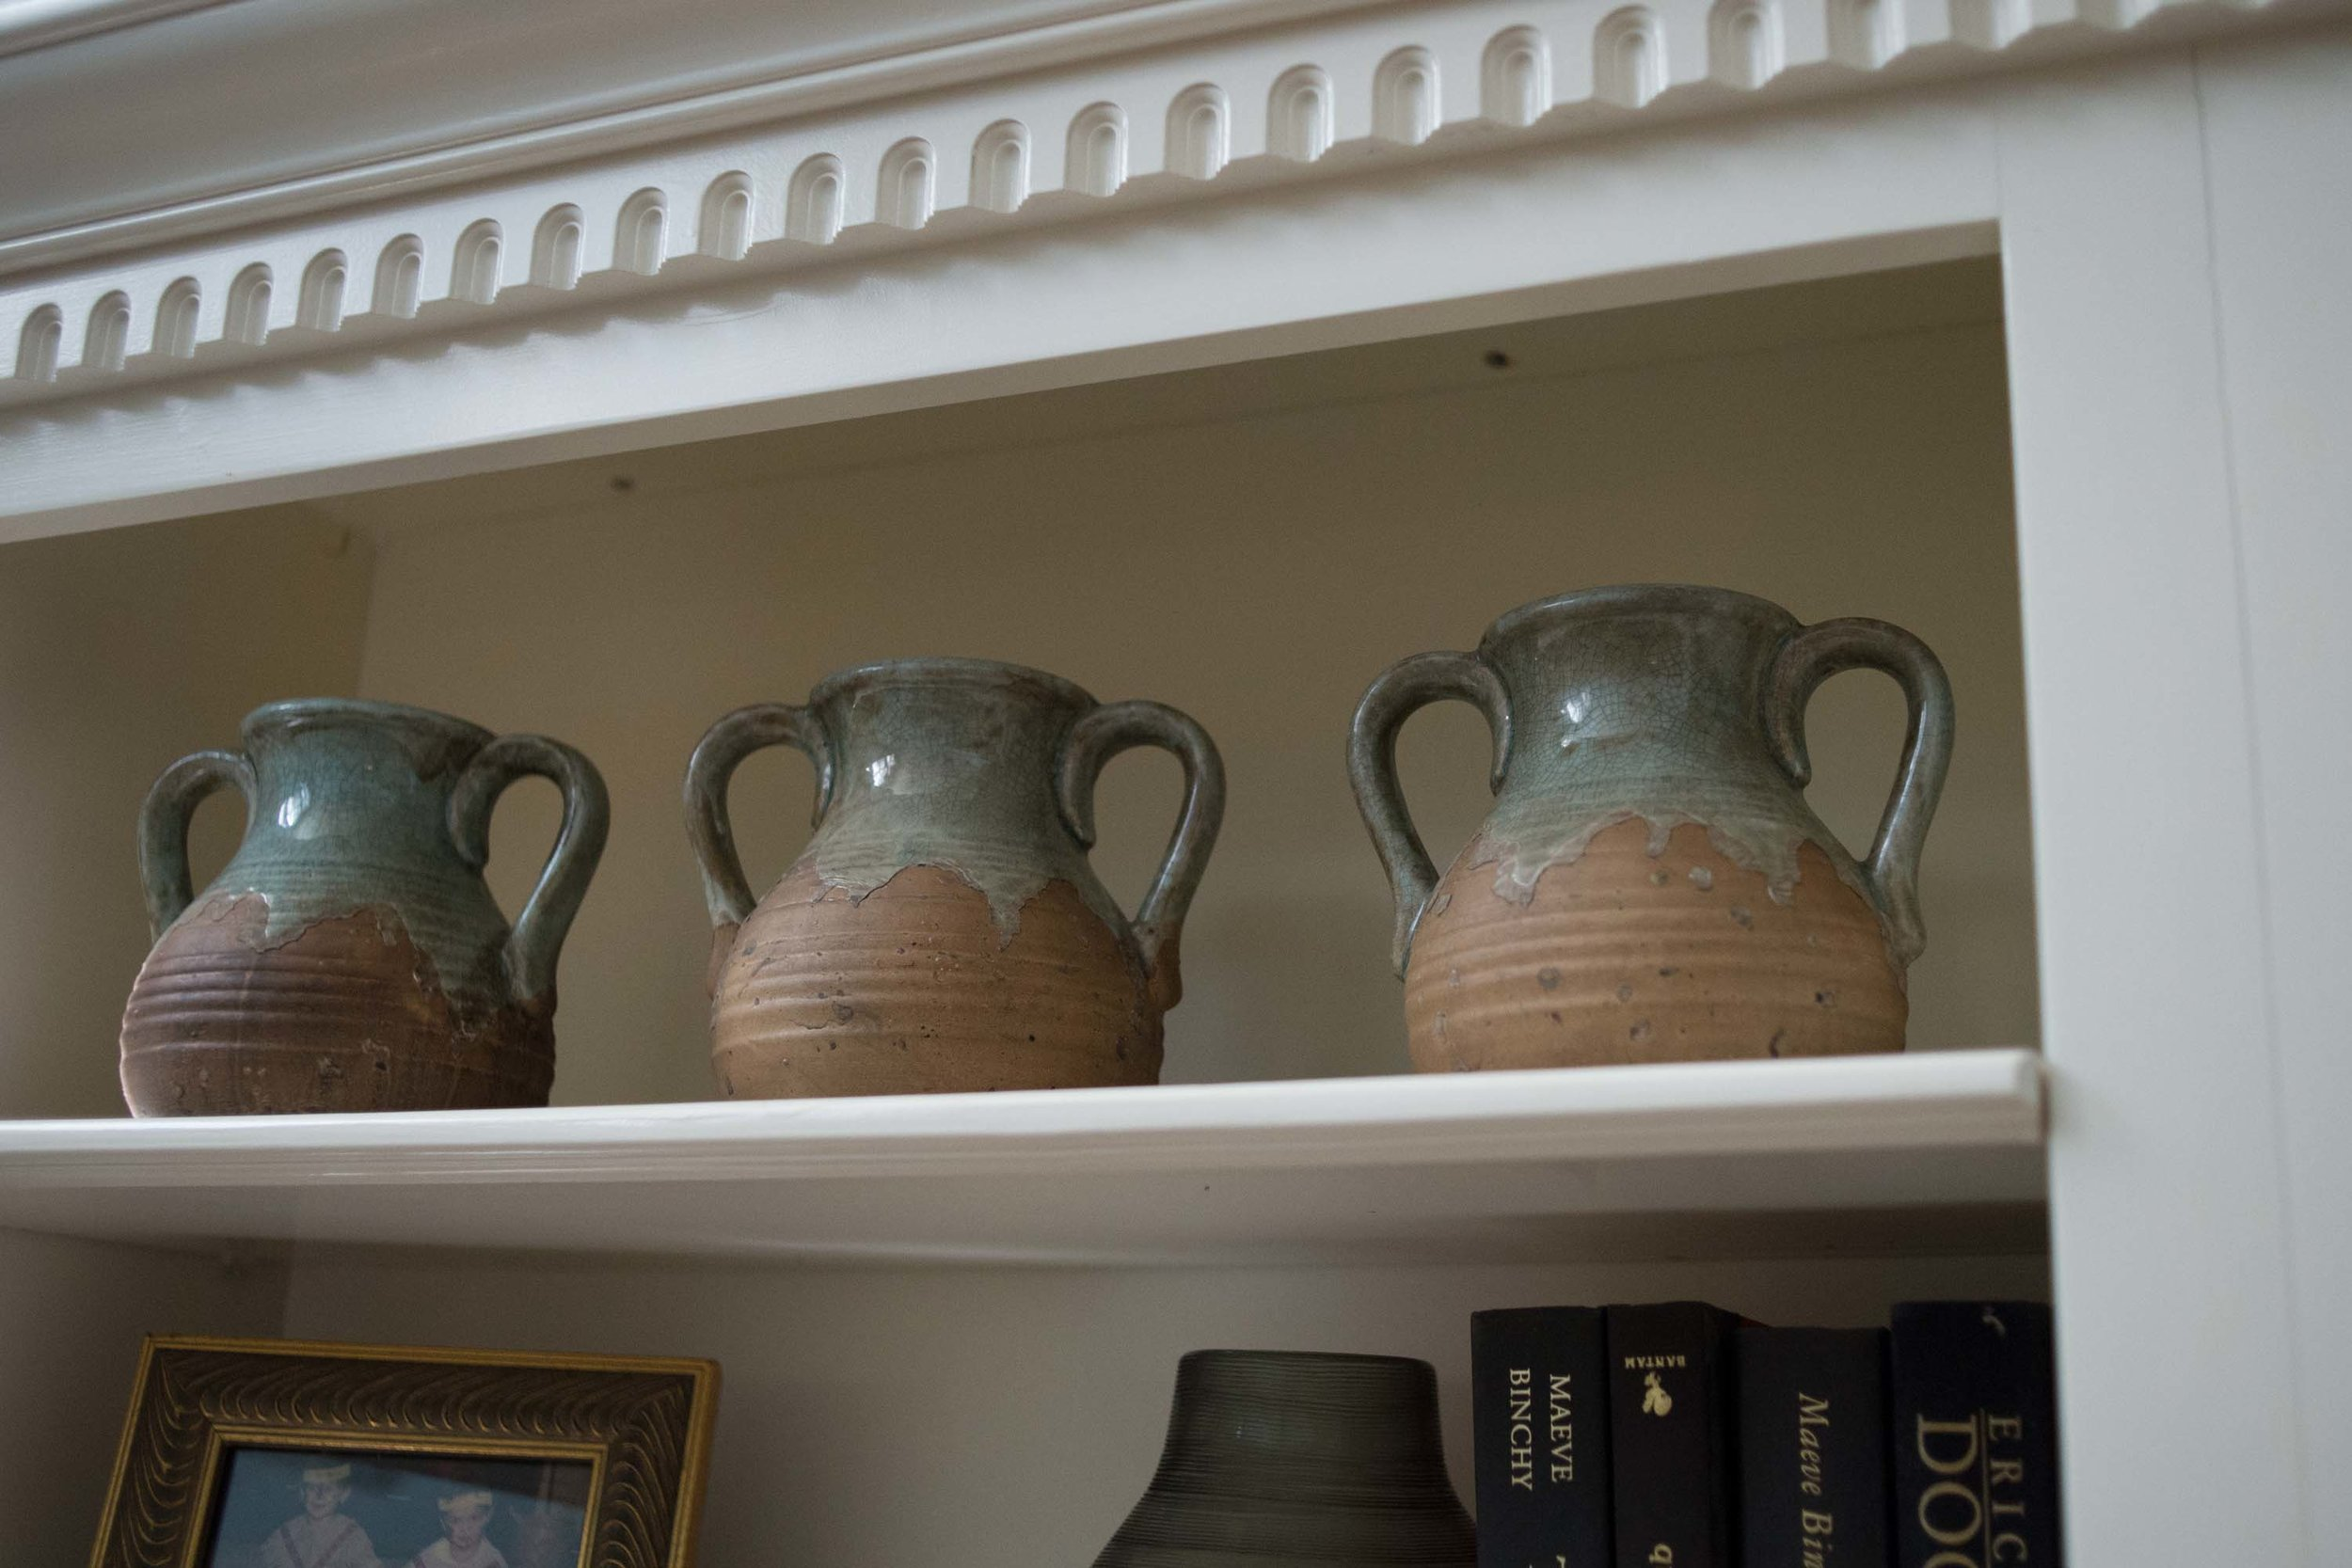 Shelves with books, vintage vases and picture frame